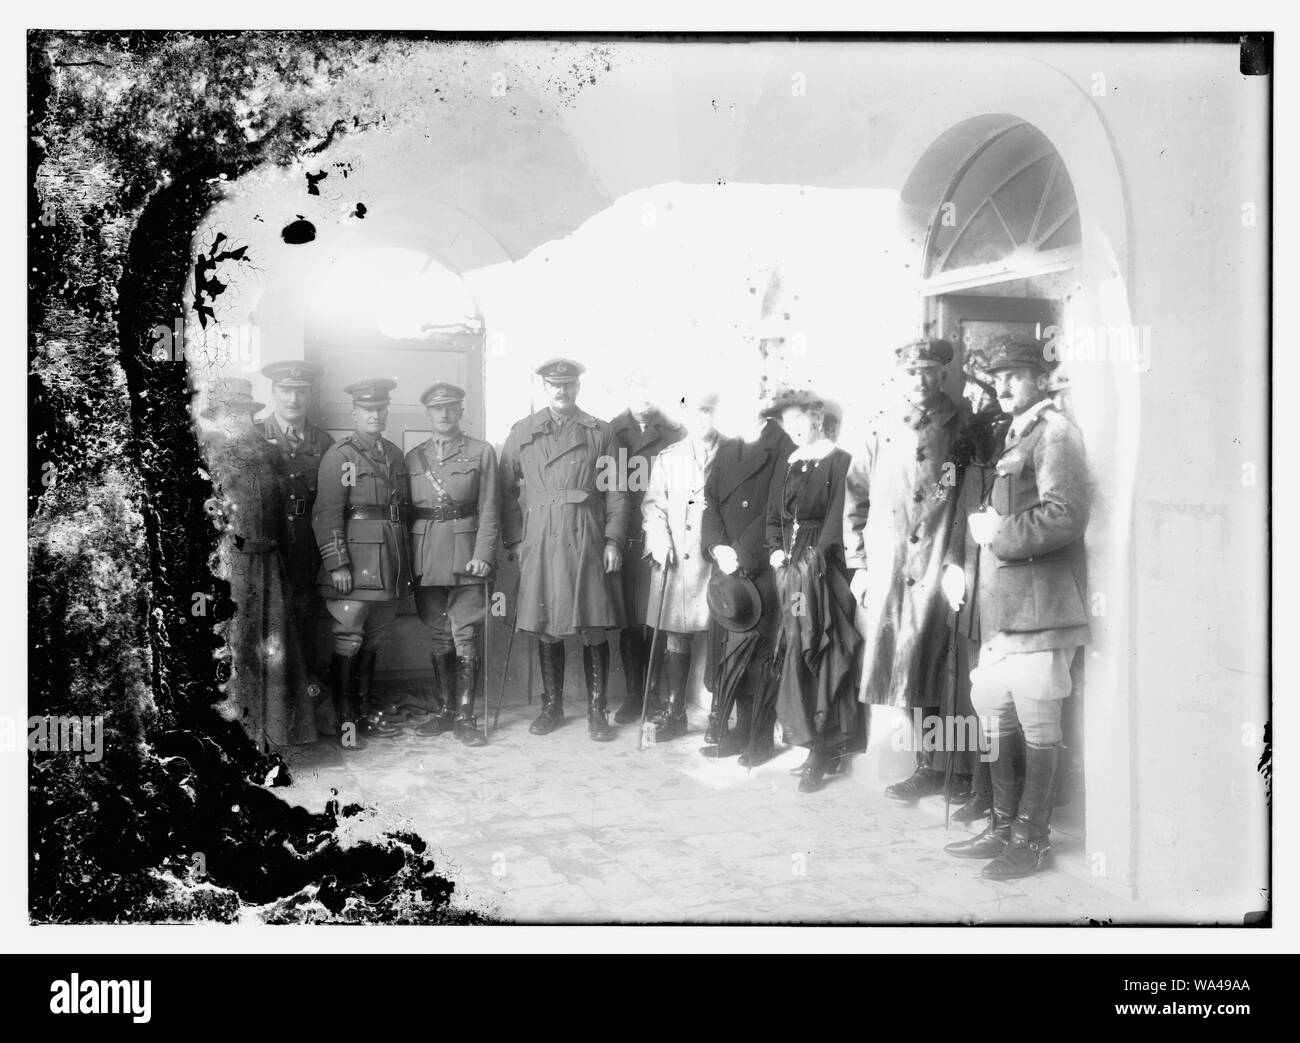 The 1918 Stock Photos & The 1918 Stock Images - Page 7 - Alamy